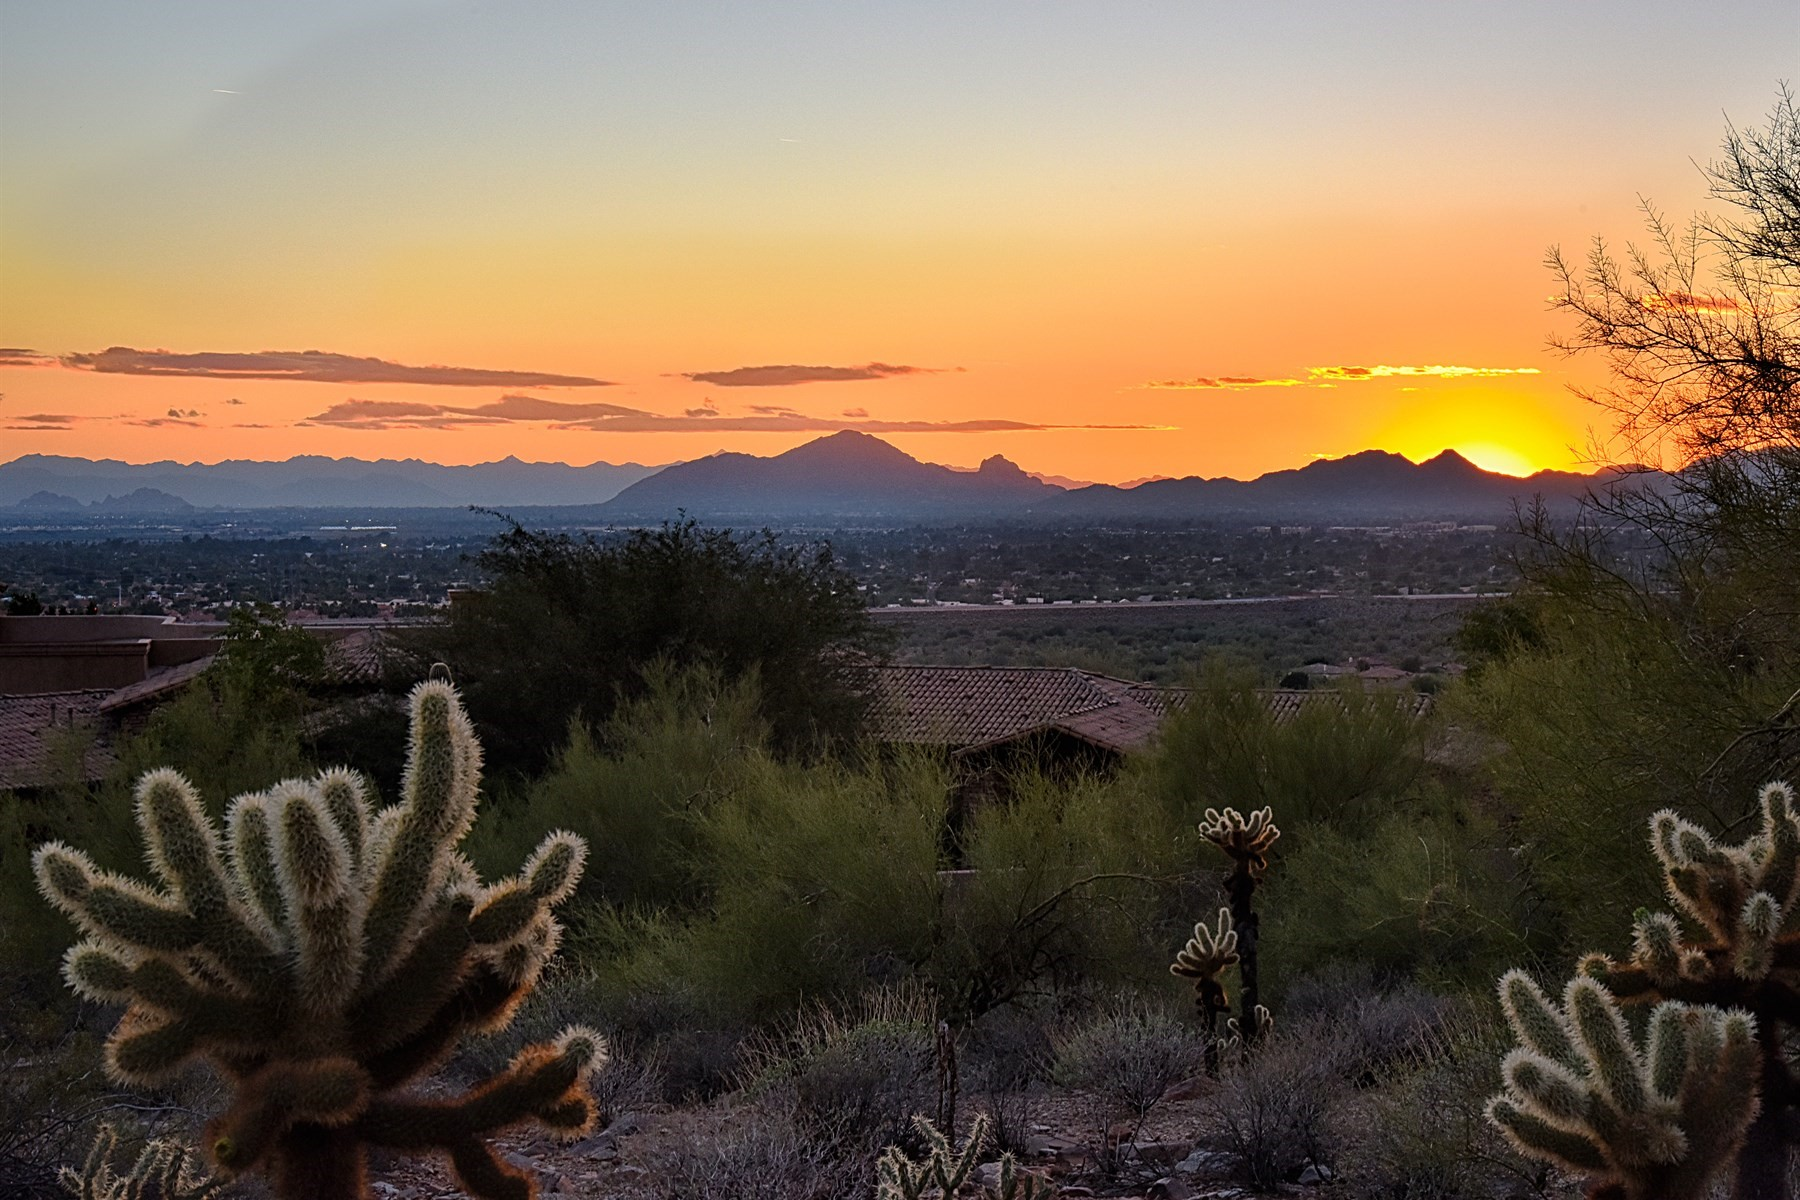 Single Family Home for Sale at Amazing opportunity to build a magnificent home with views 11762 E Dreyfus Ave Scottsdale, Arizona, 85259 United States